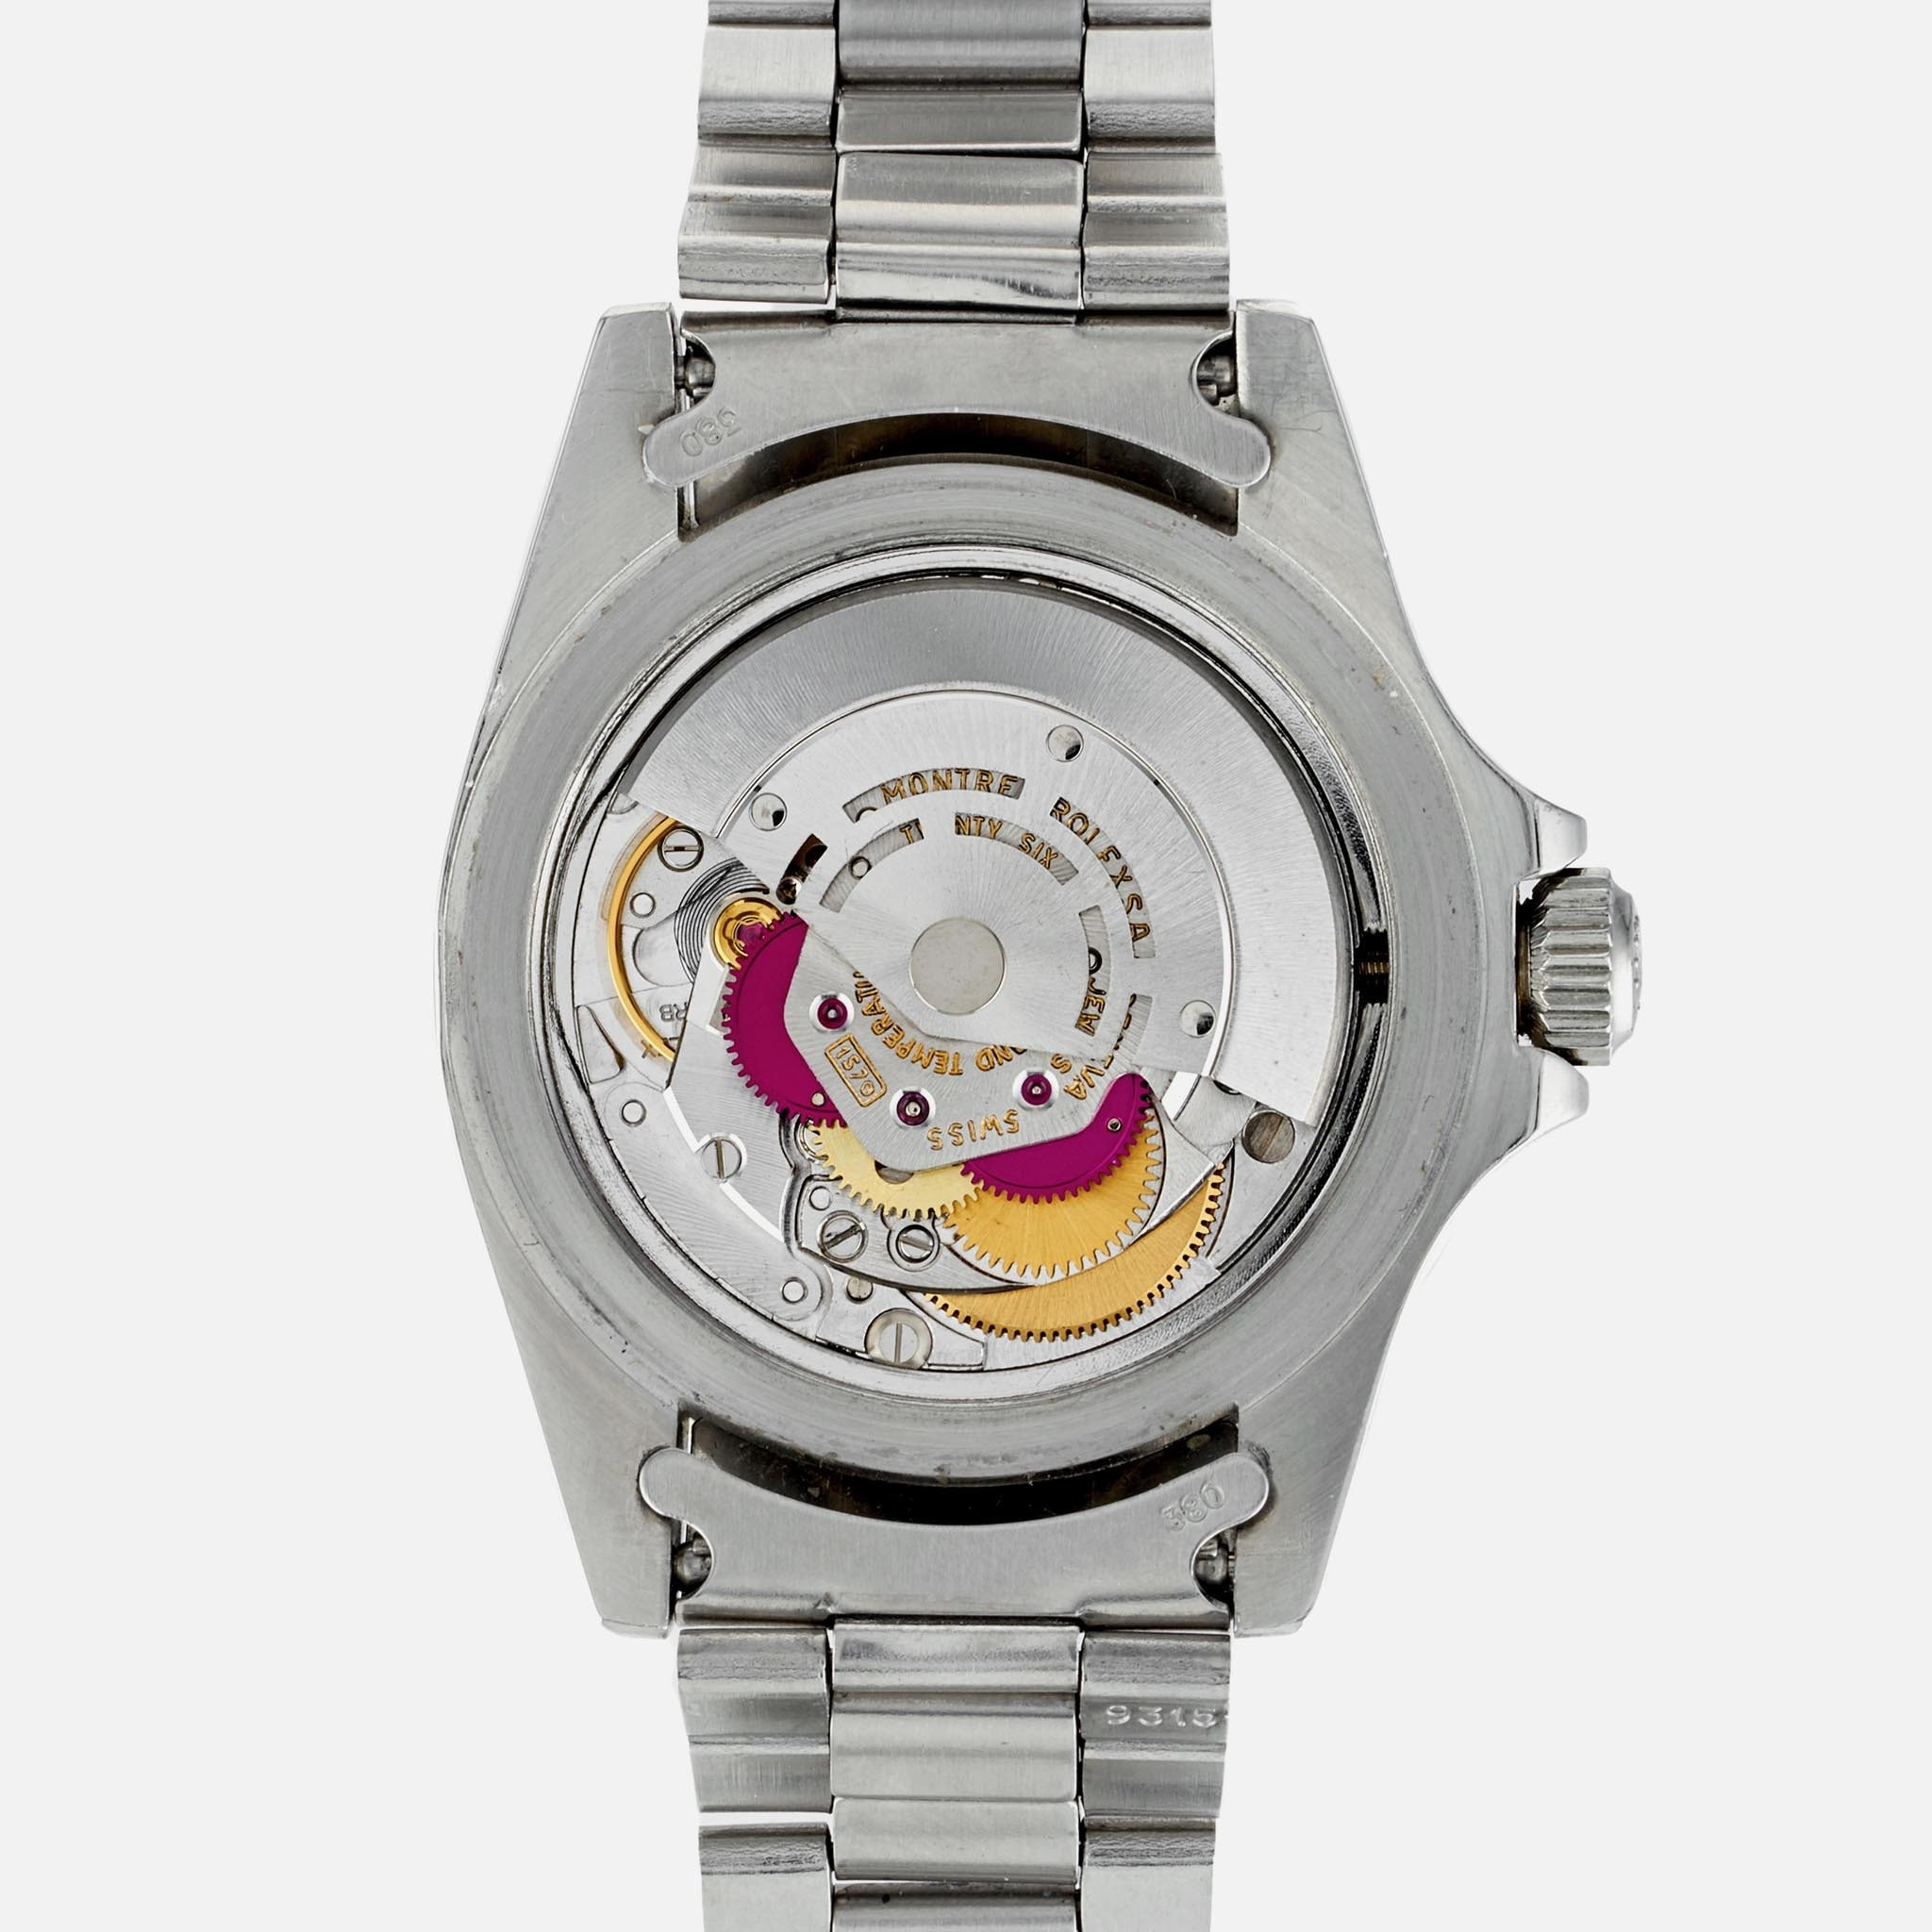 说明:57-Rolex1680-movement